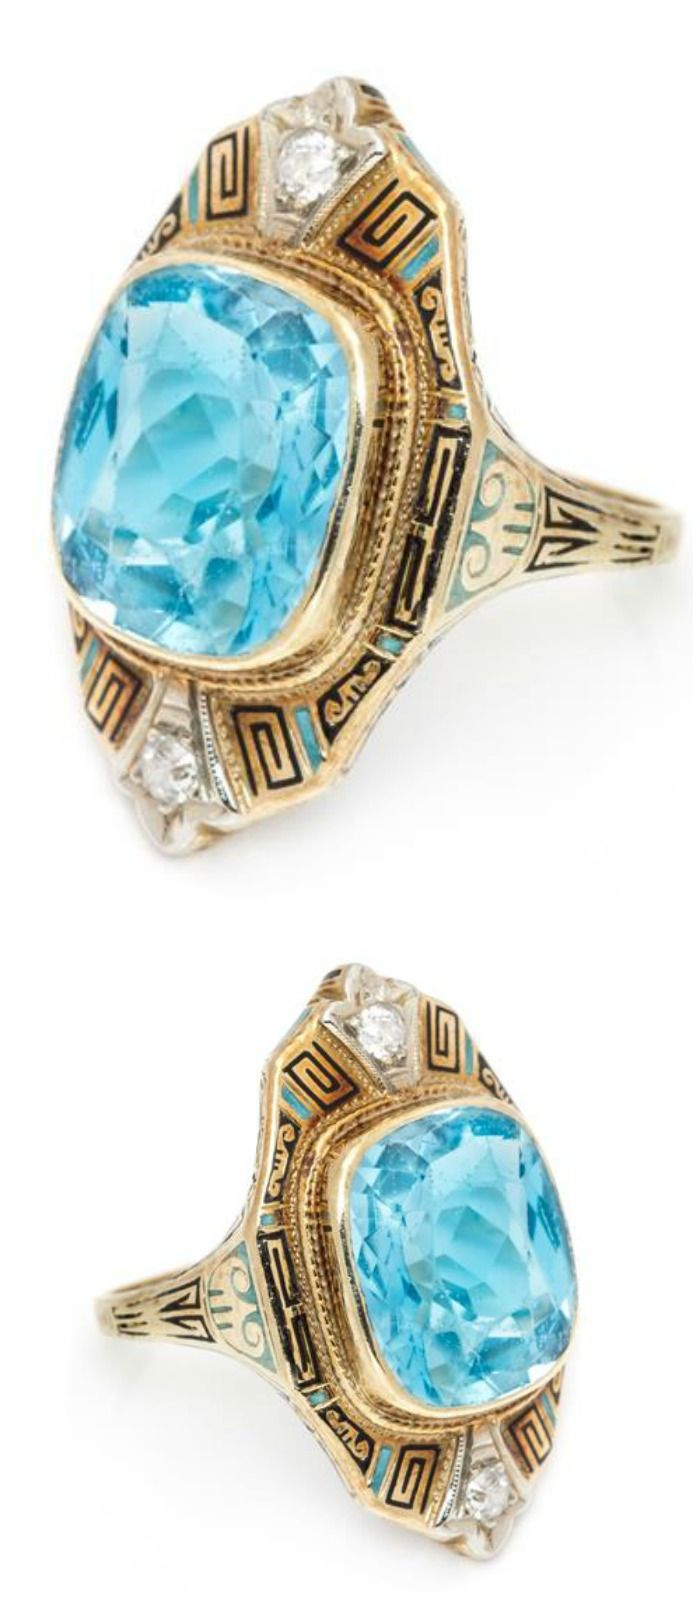 A beautiful antique Art Deco ring with a large aquamarine, accent diamonds, and enamel detailing.